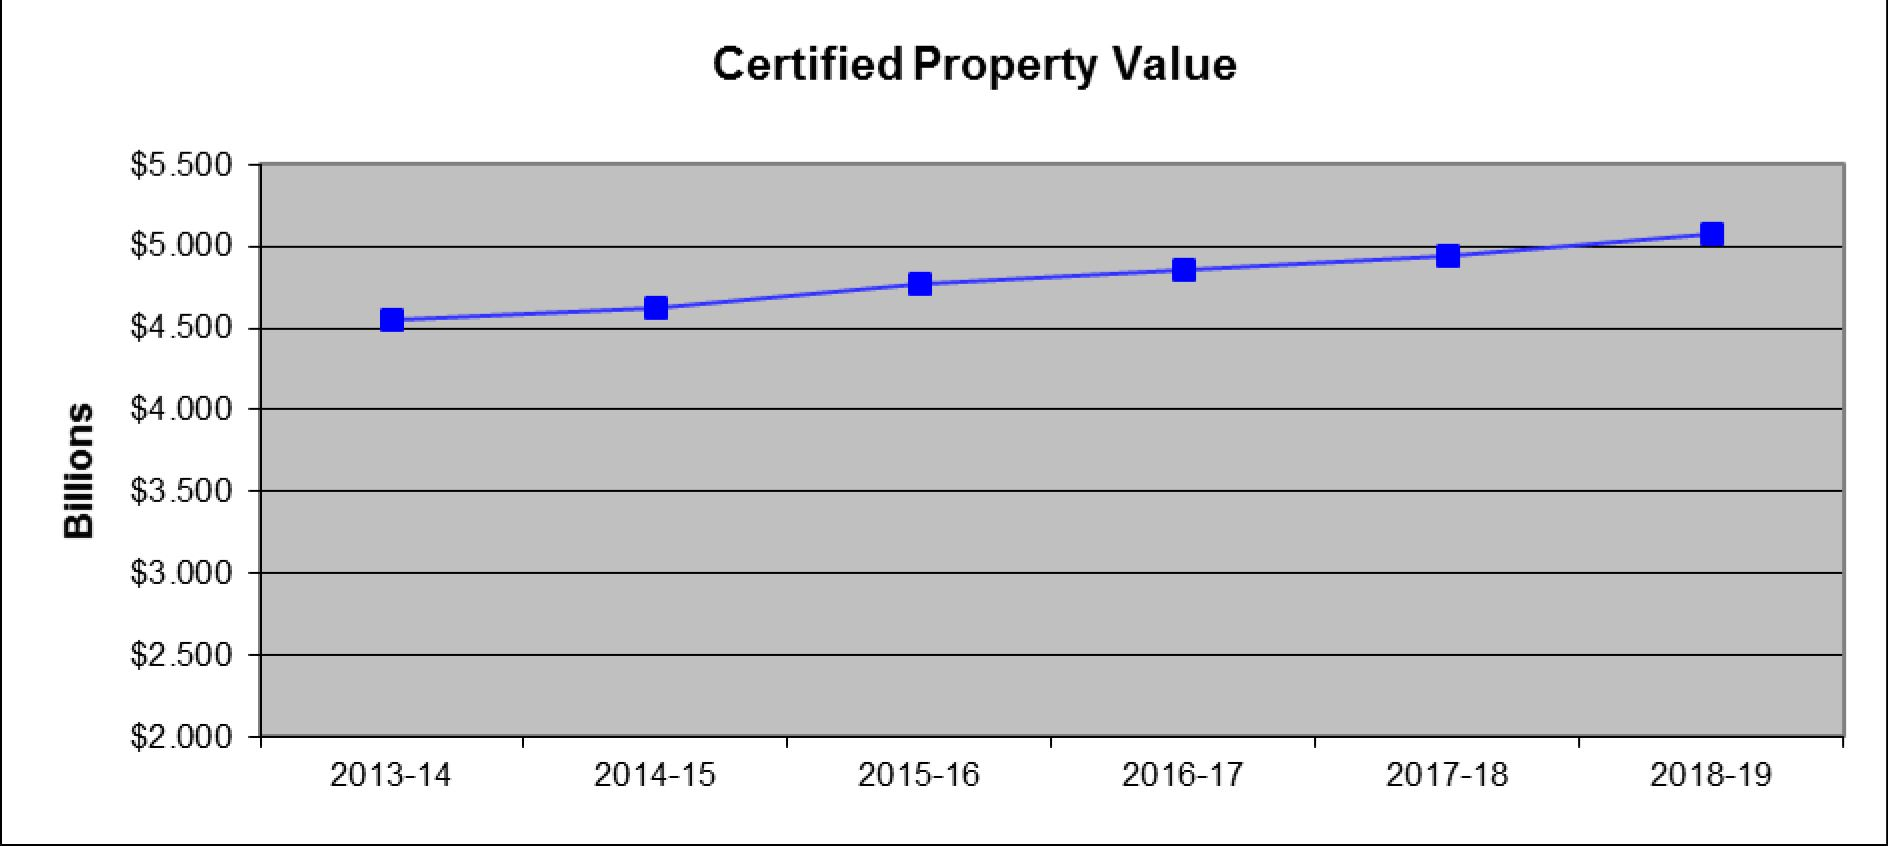 Certified Property Value 2019